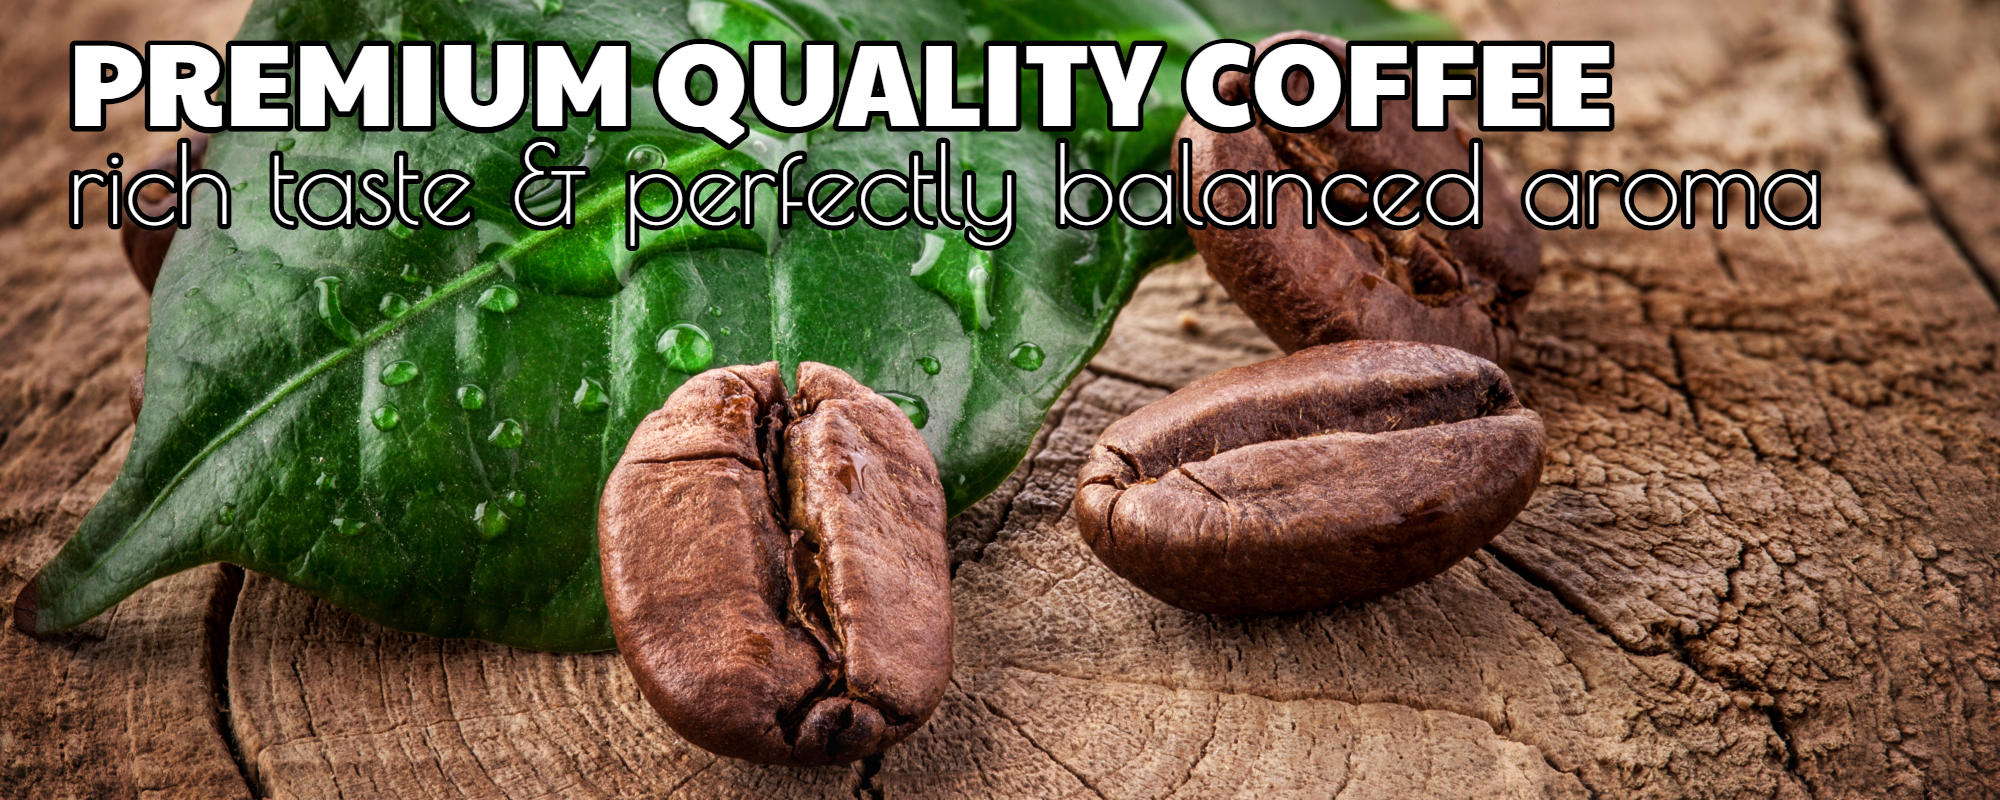 Premium quality coffee - Rich taste & perfectly balanced aroma